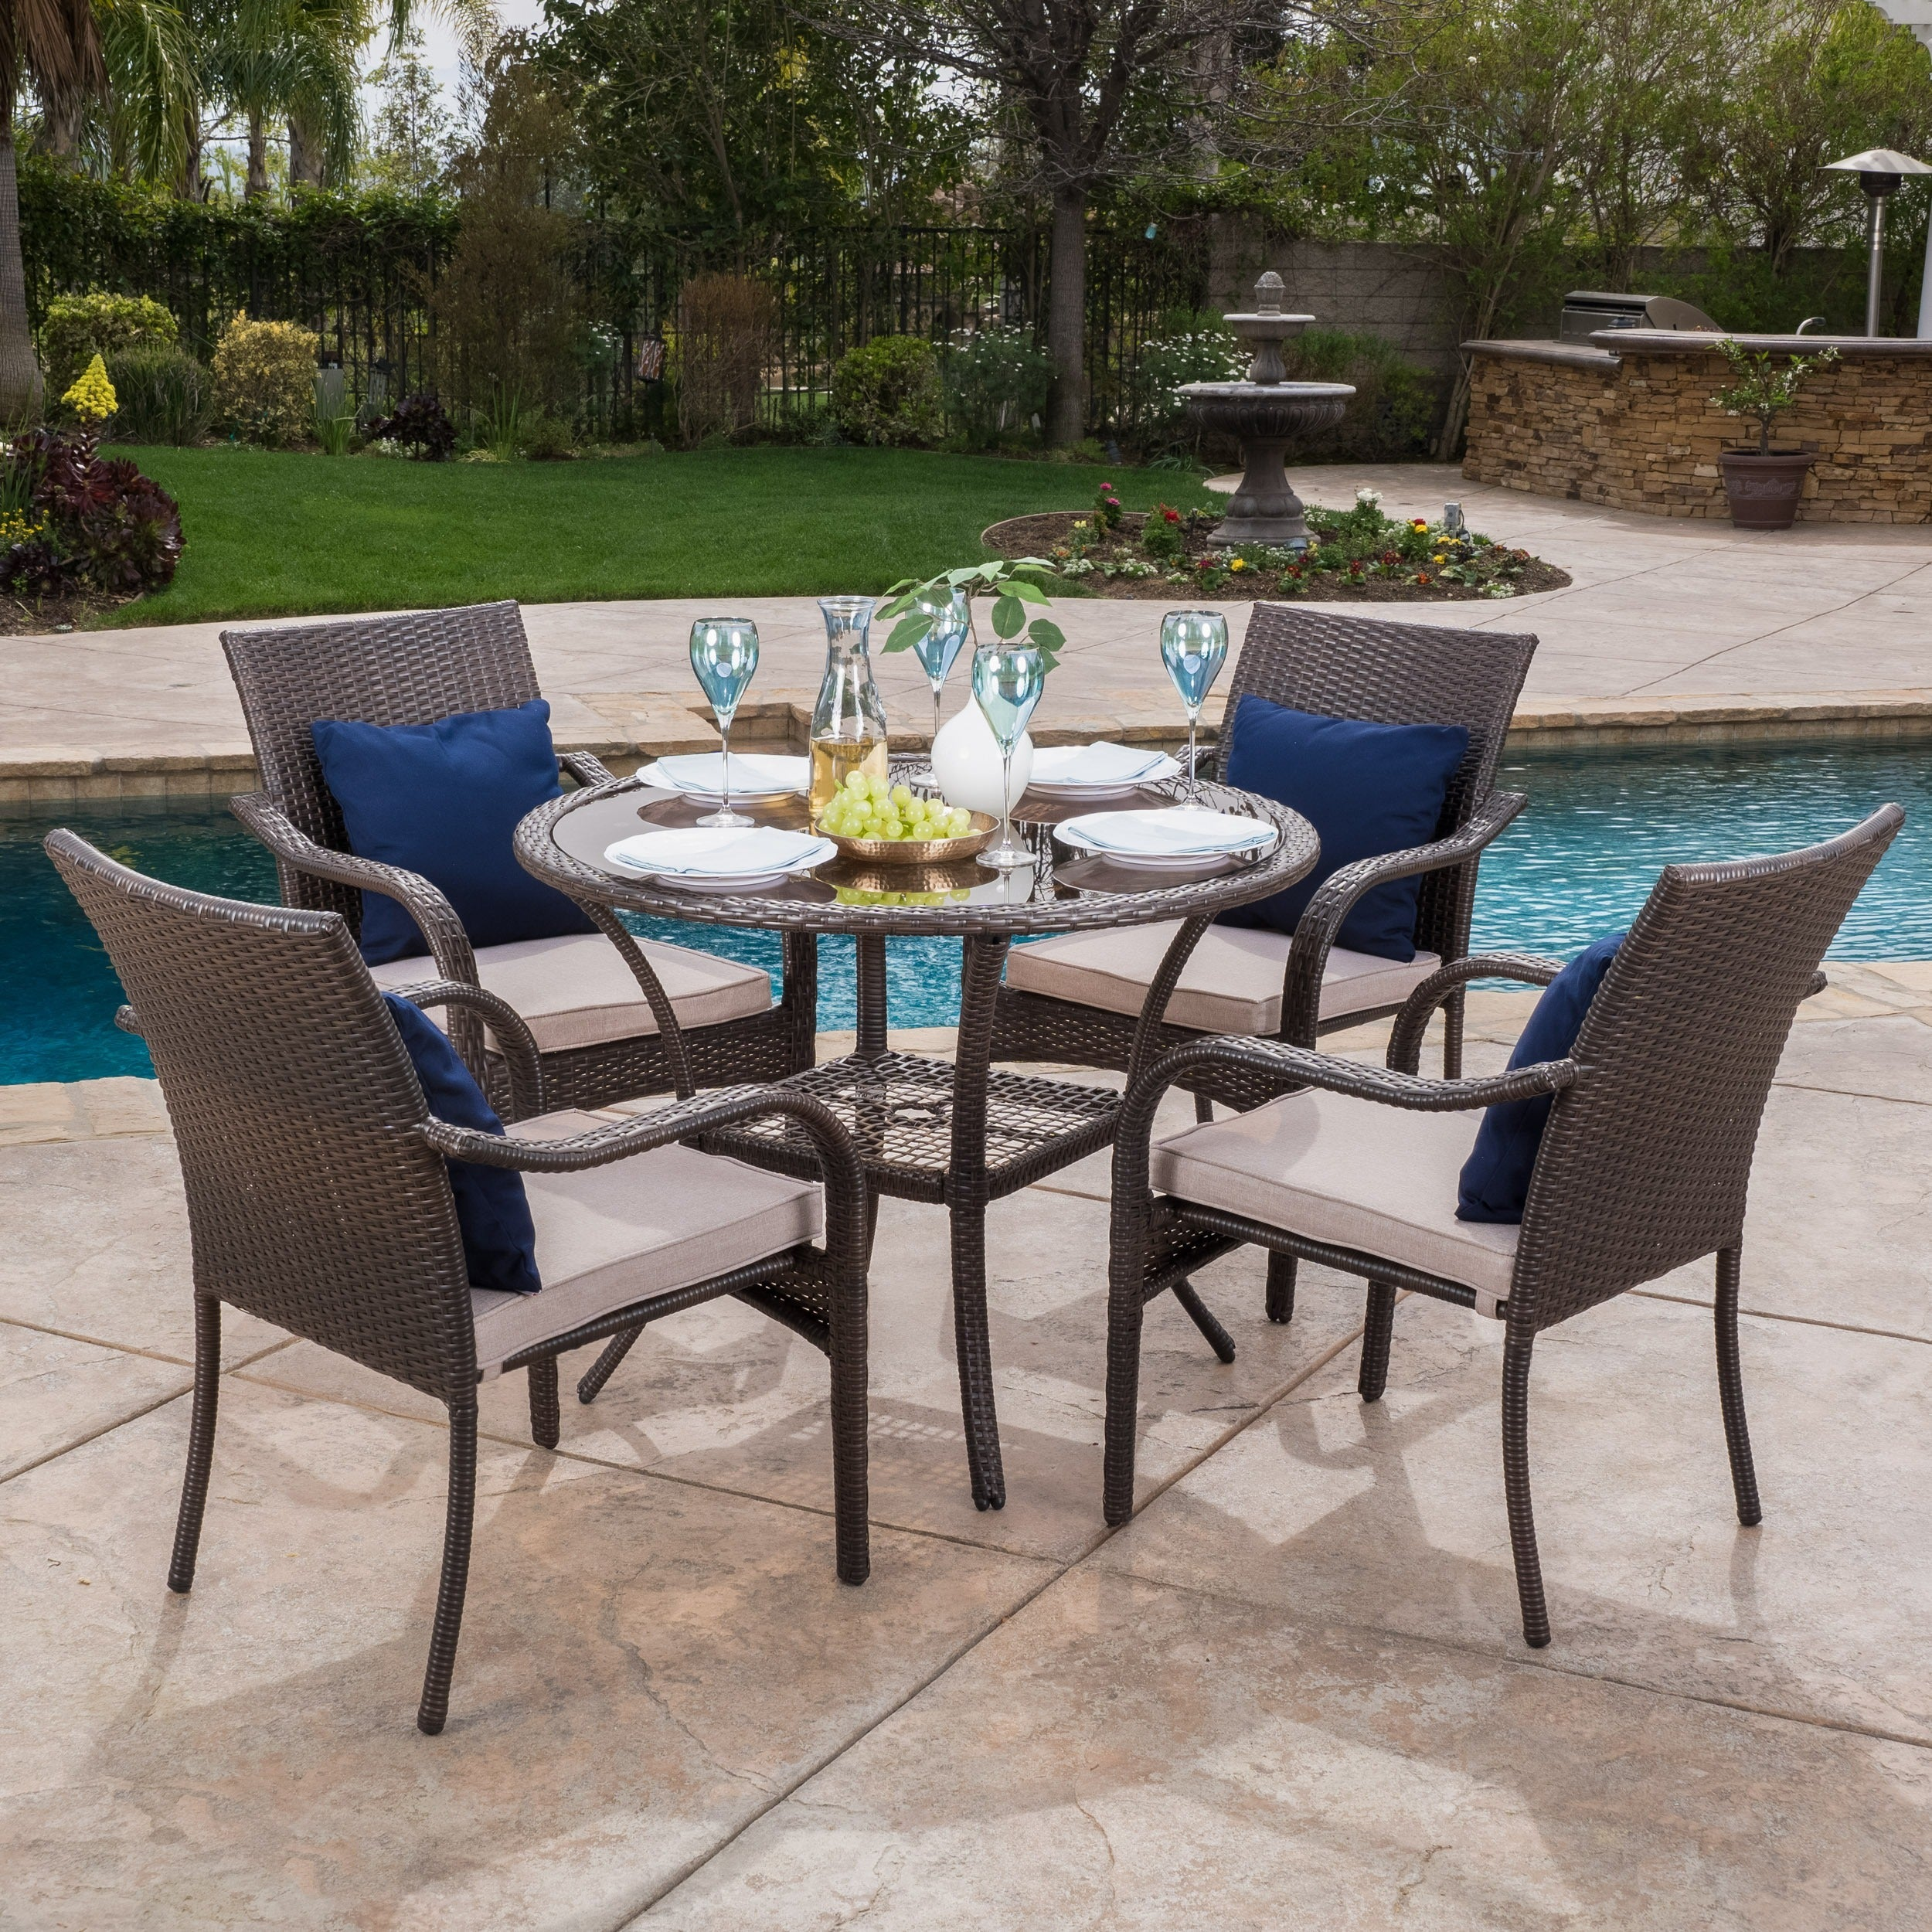 San Pico Outdoor Wicker 5 piece Dining Set with Cushions by